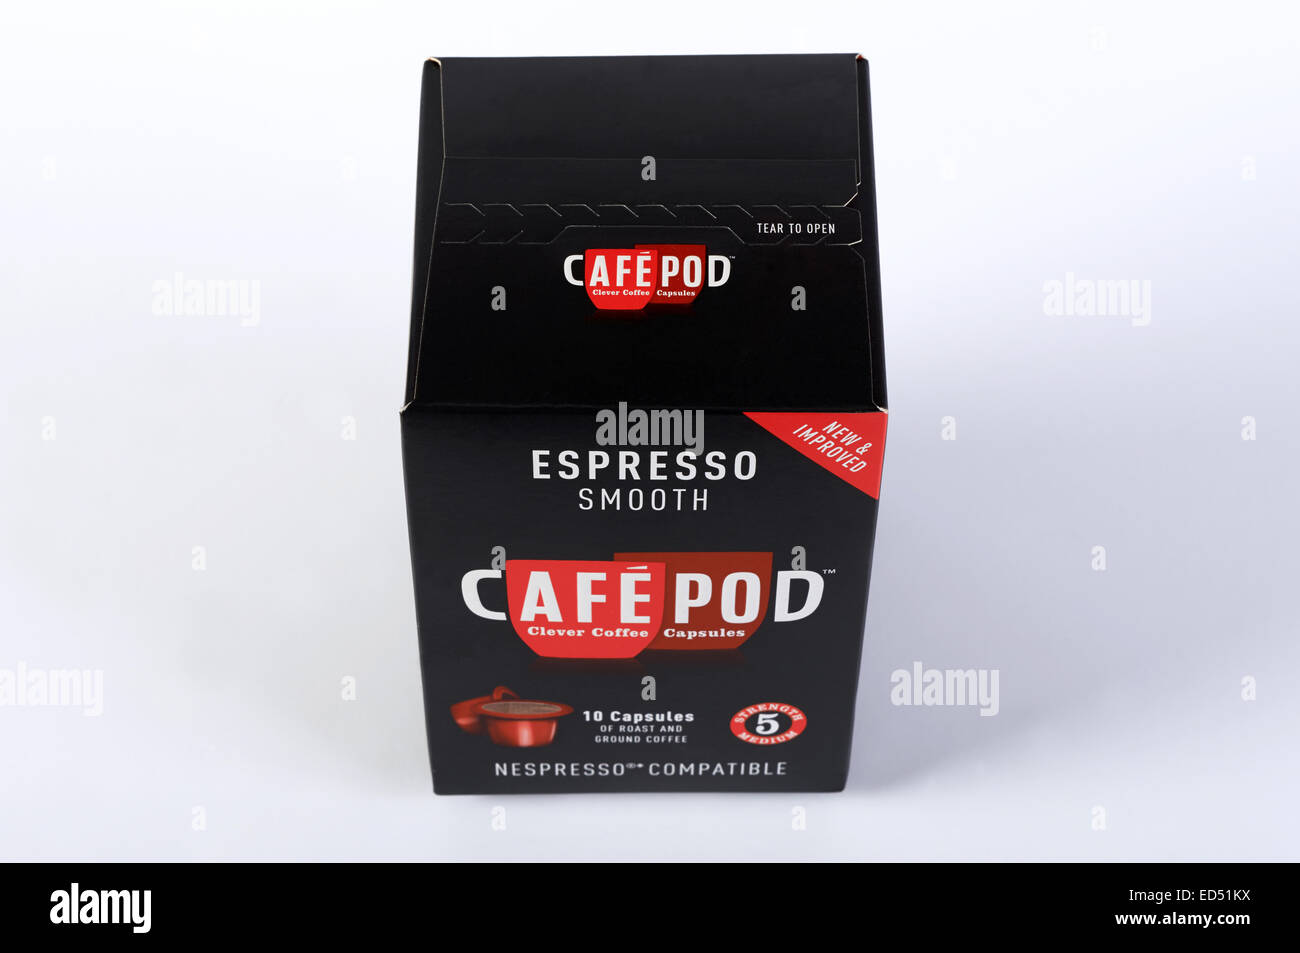 Espresso Smooth Cafe Pod Nespresso compatible coffee pods - Stock Image